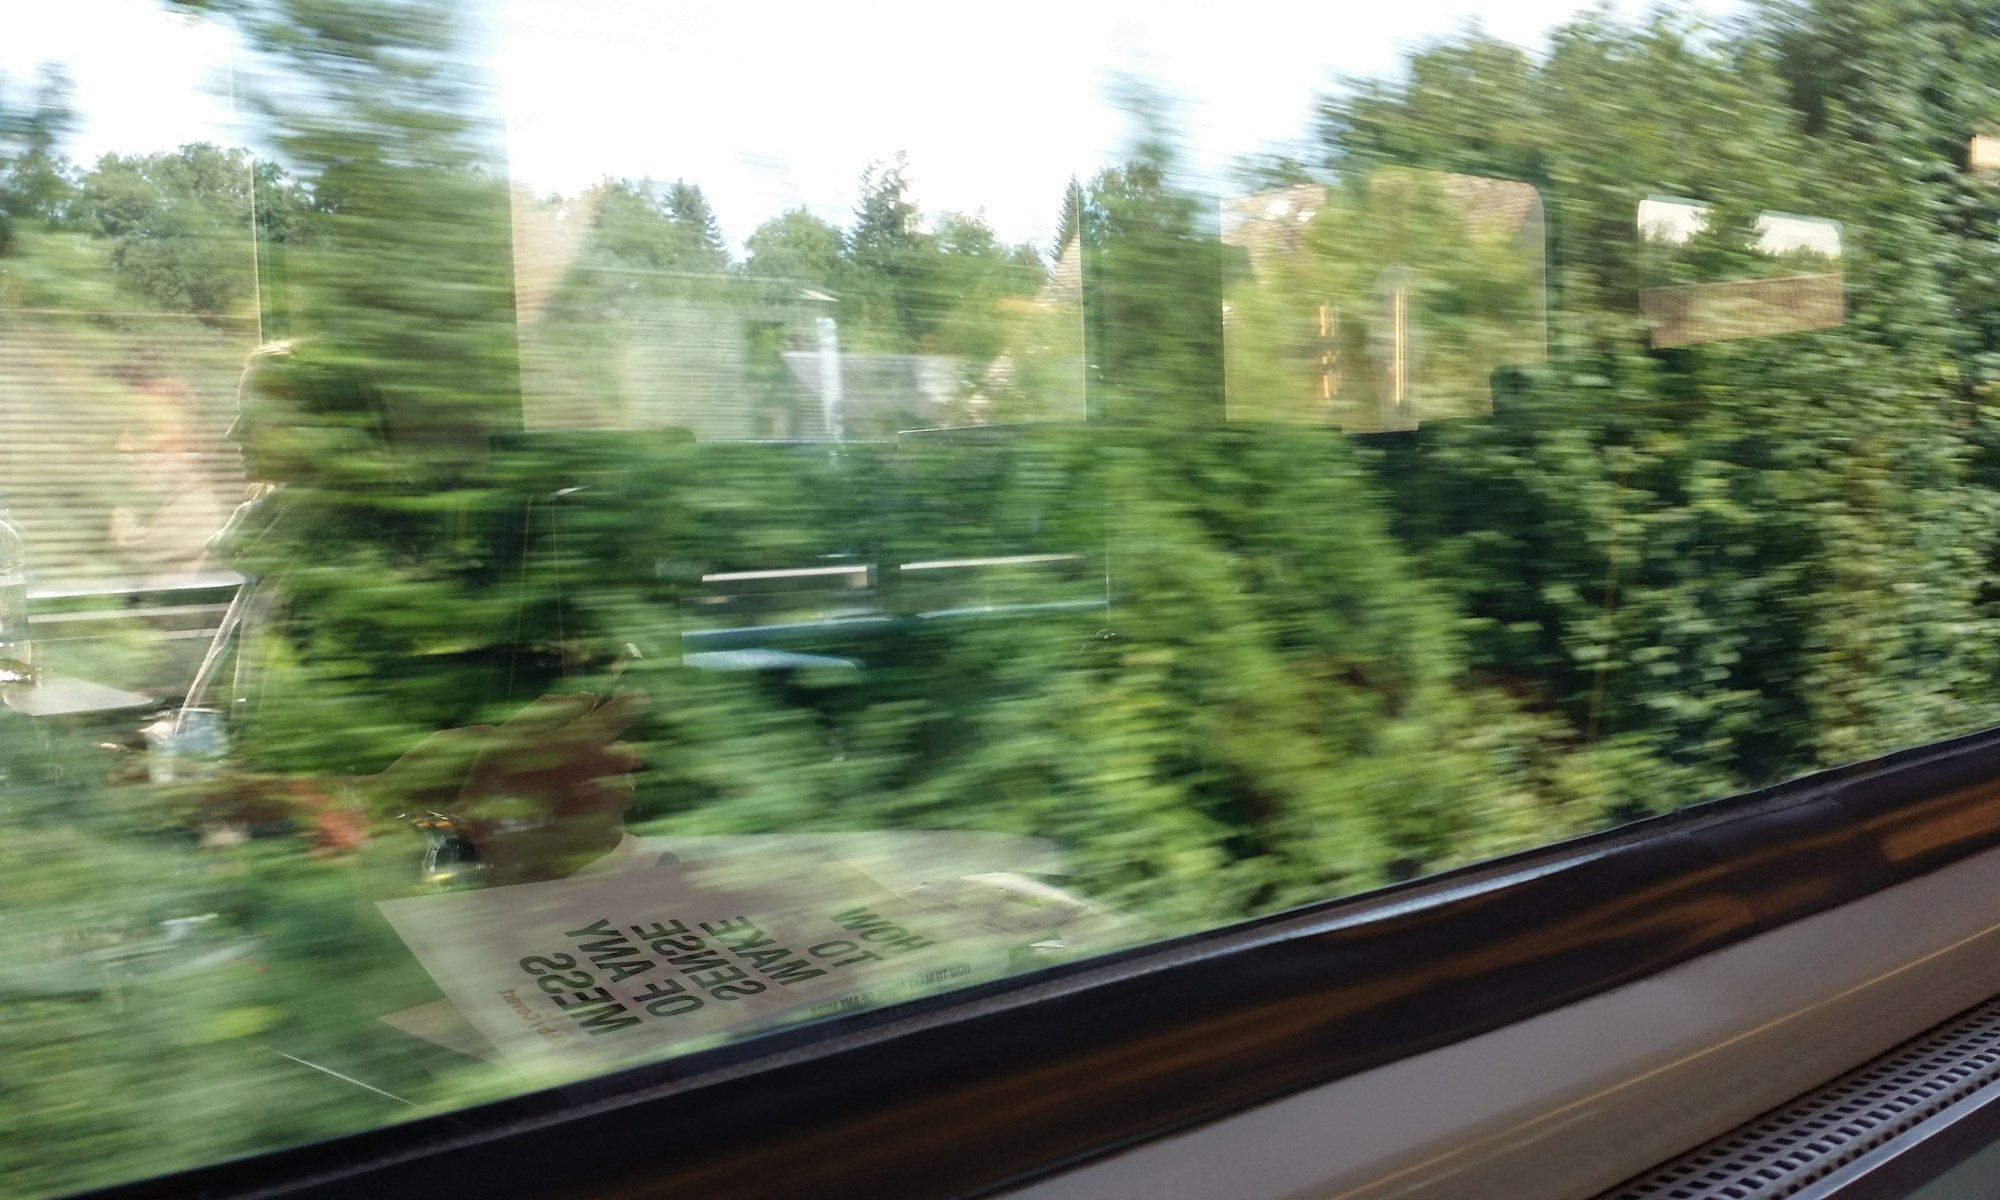 Looking out the window of a moving train at green trees, you can also see the reflection of a book and a woman sitting inside the train car